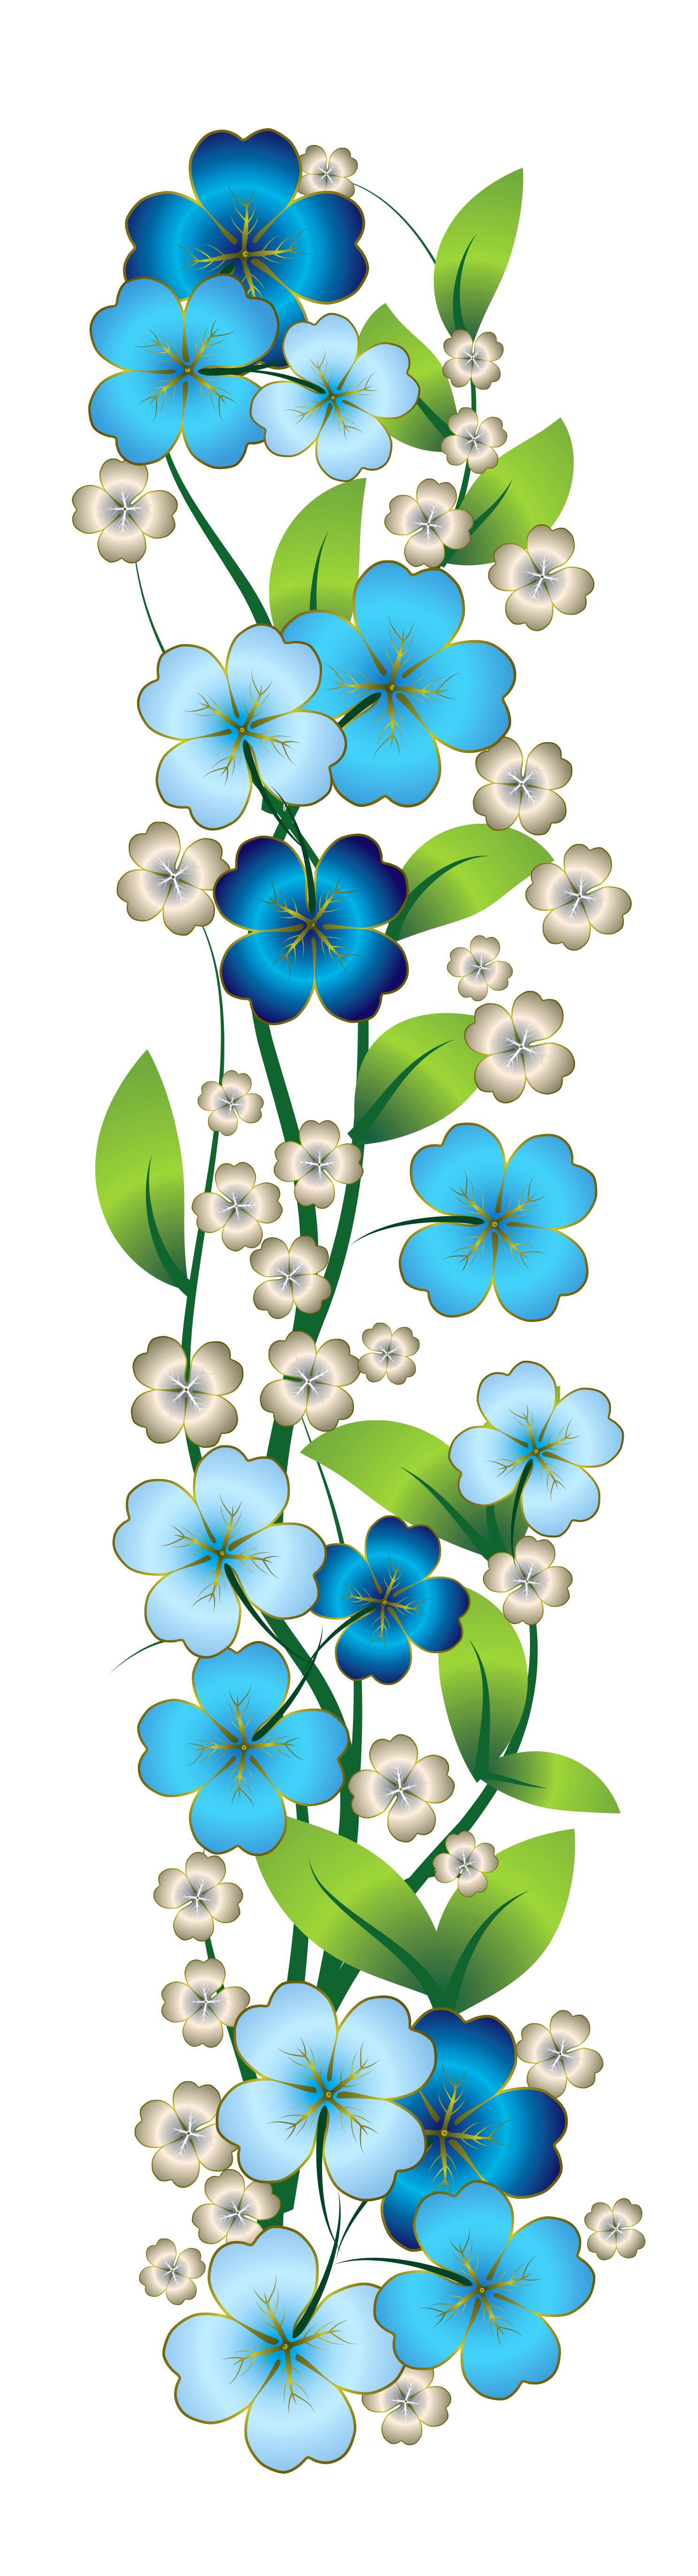 Blue Flower Decor PNG Clipart Blue flowers decor, Flower